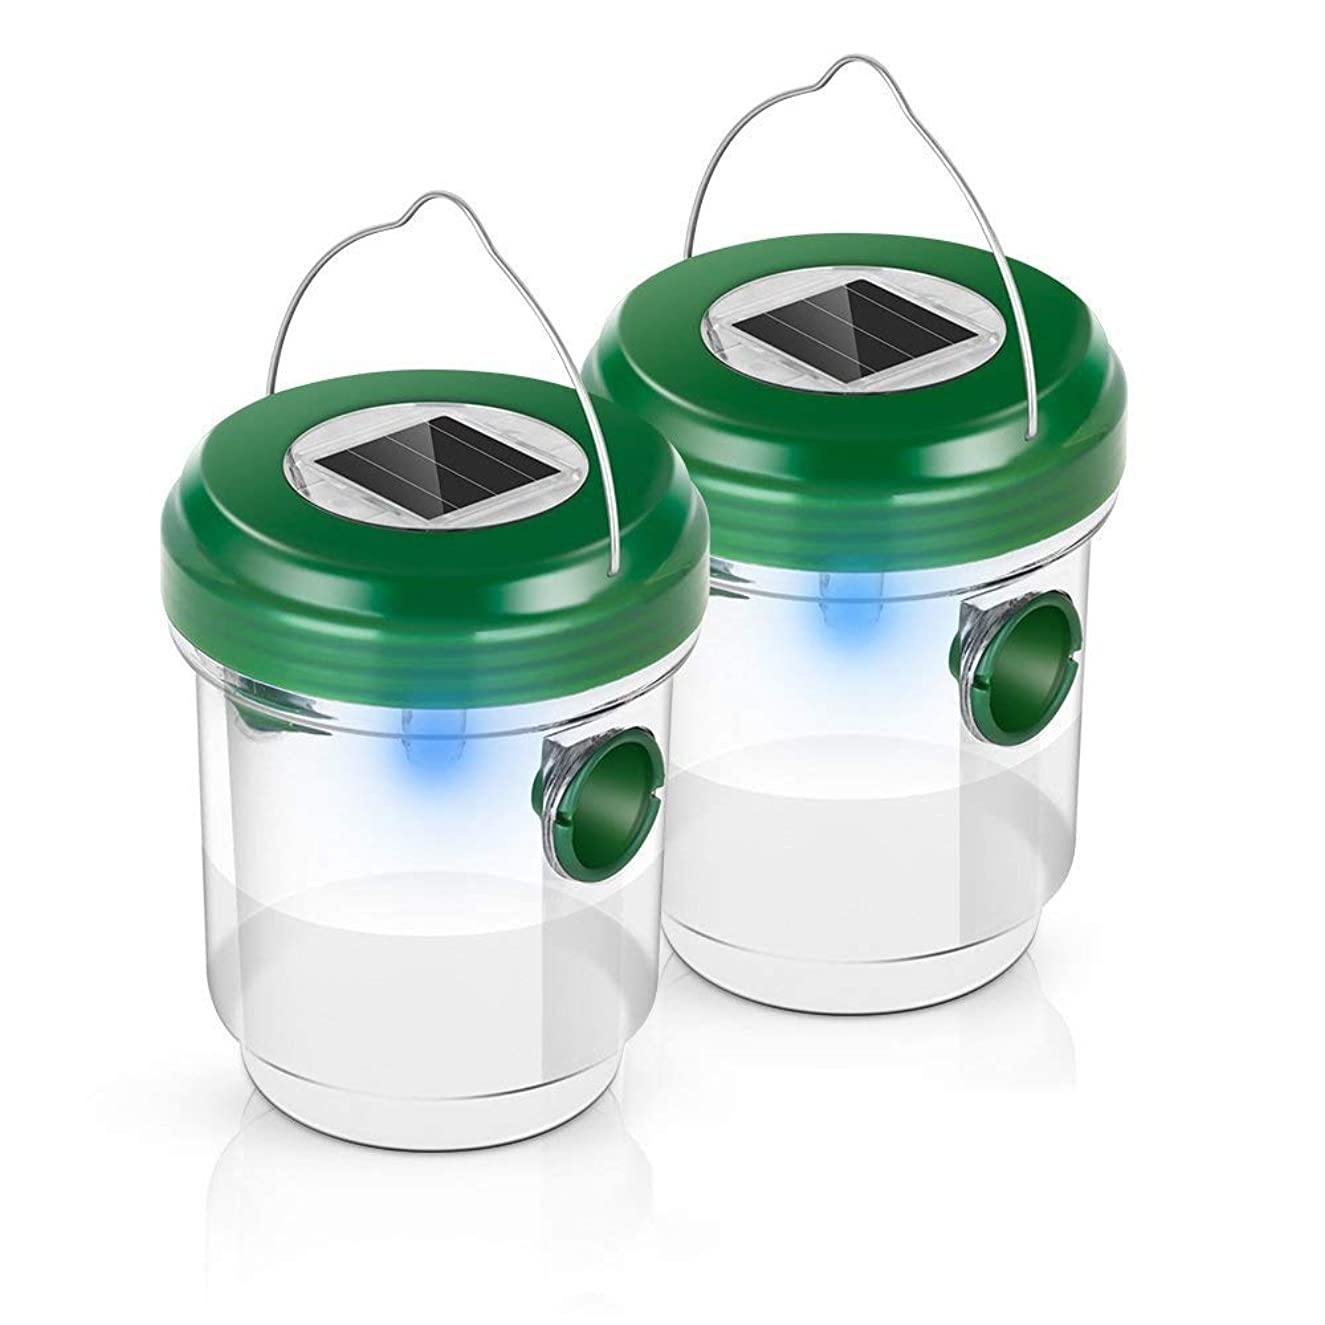 Cypropid Wasp Traps Catcher, Life Outdoor Solar Powered Fly Ultraviolet LED Light Waterproof for Trapping Bees, Hornets, Yellow Jackets, Bugs in Home Garden (2 Pack), Green